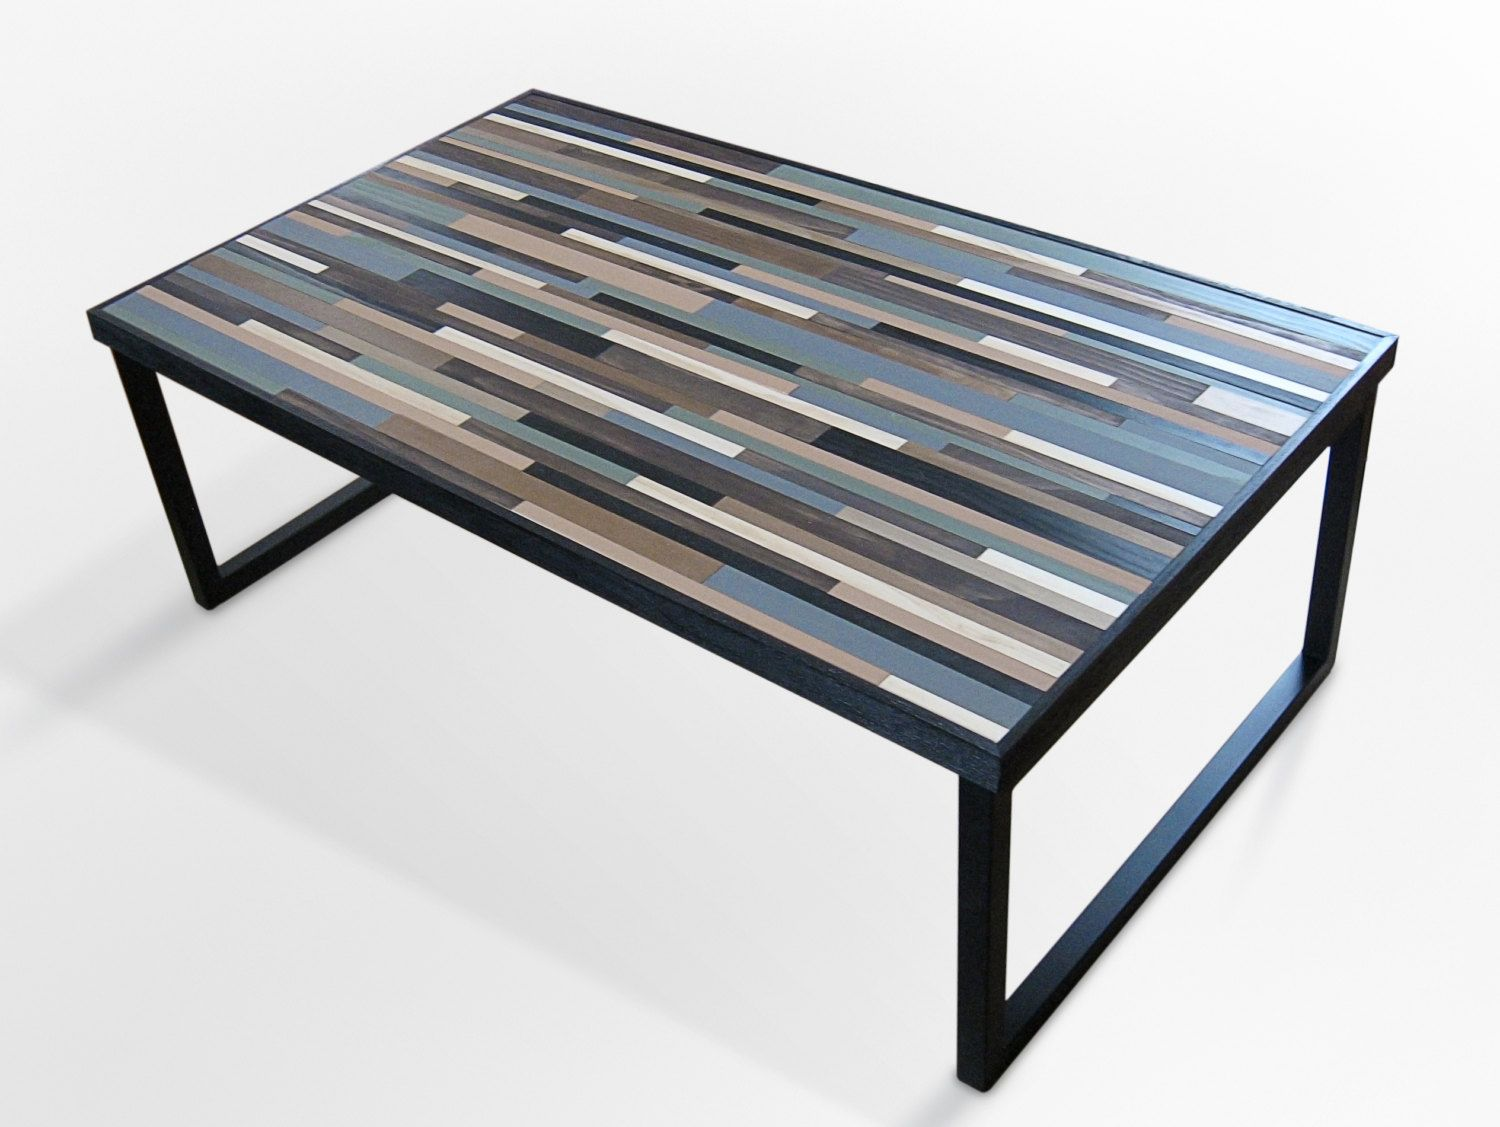 Reclaimed wood table modern industrial wood by modernrusticart reclaimed wood table modern industrial wood coffee table with square metal legs desk side furniture home decor wood geotapseo Gallery